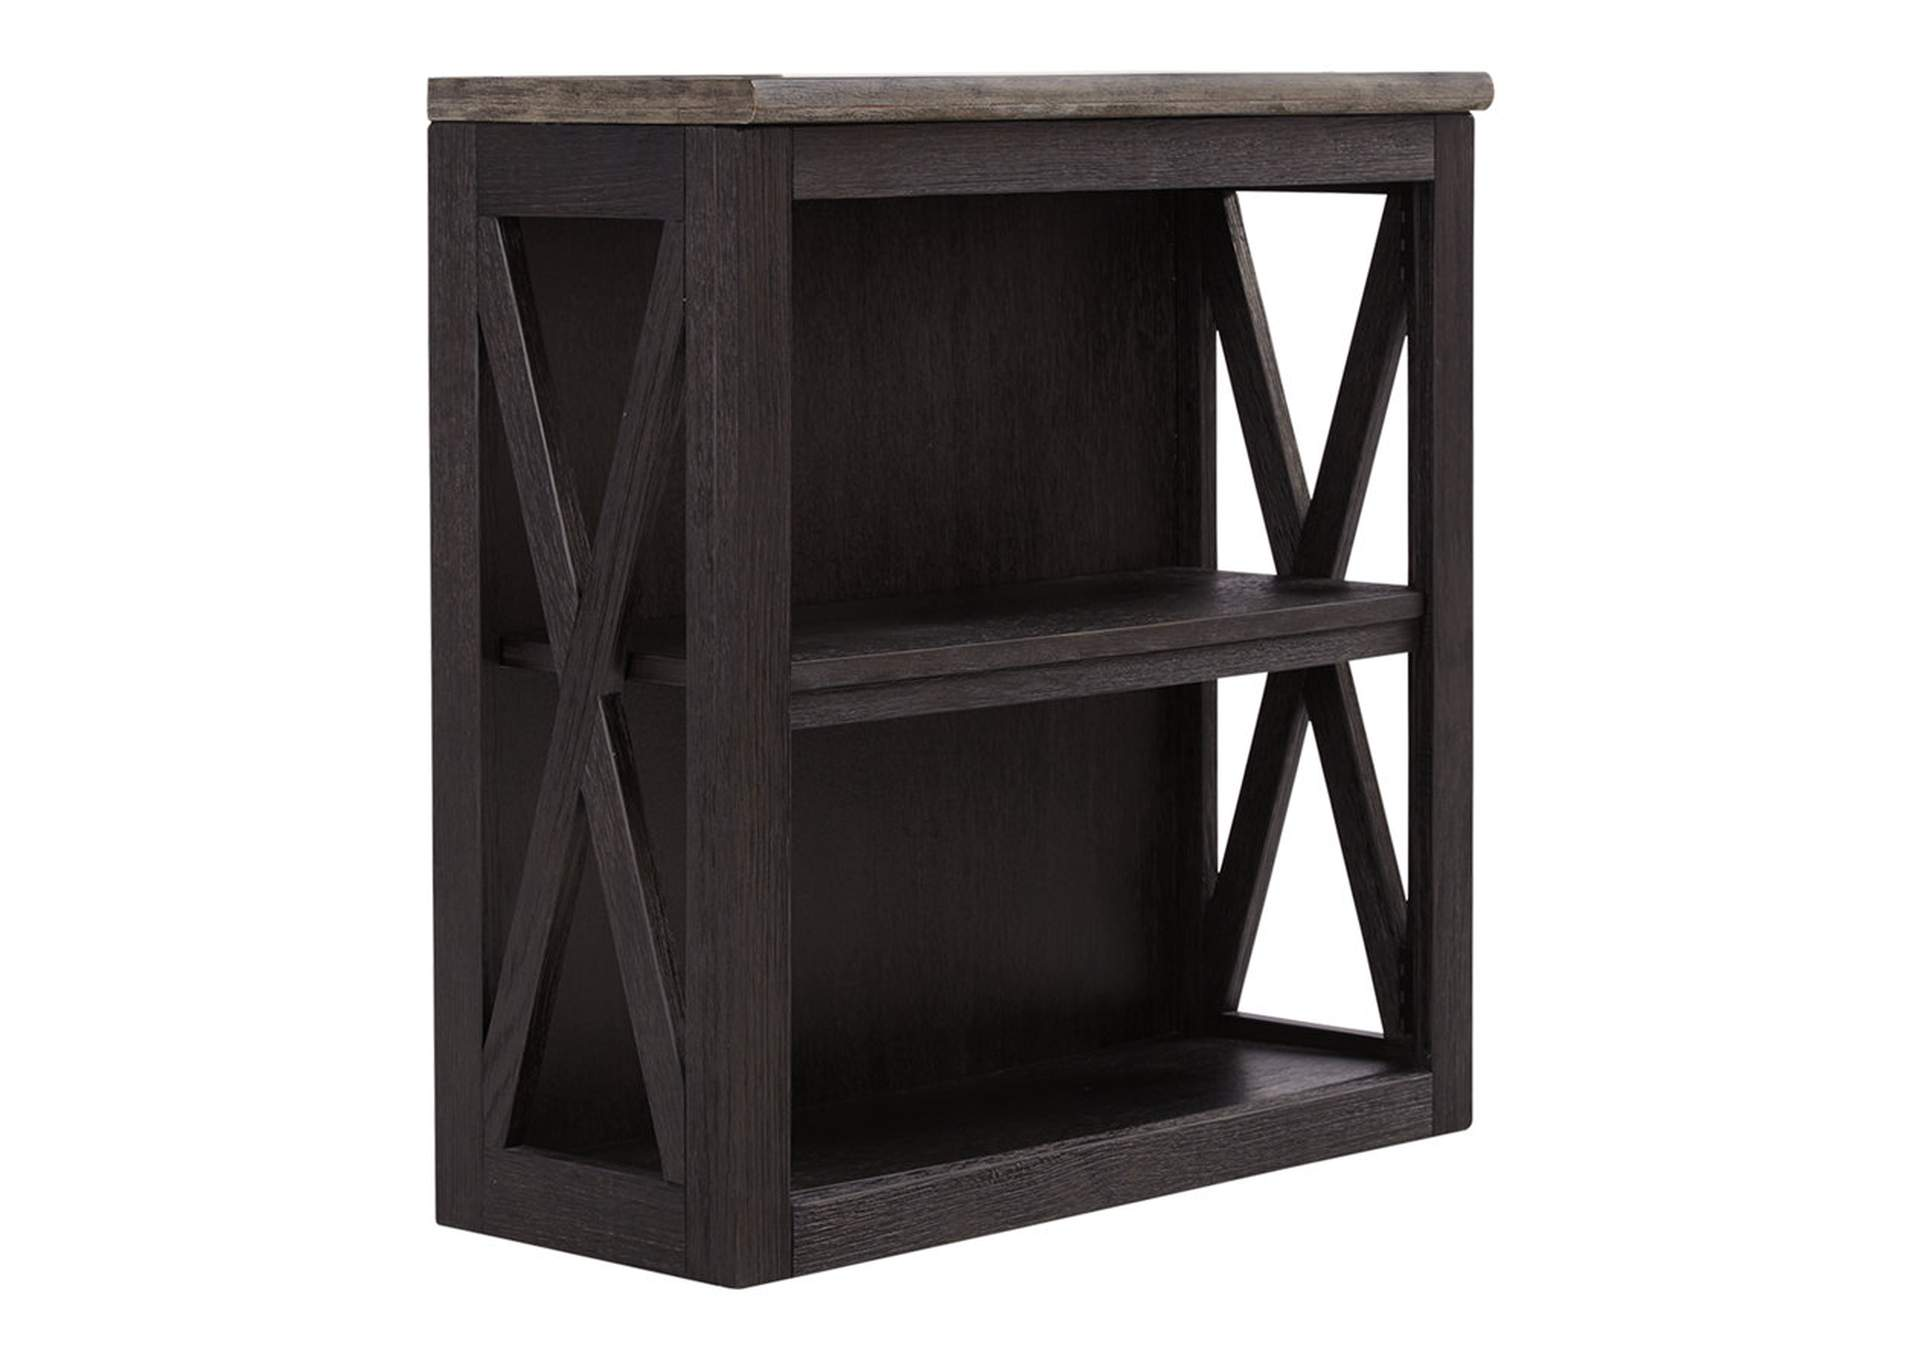 Tyler Creek Grayish Brown/Black Medium Bookcase,Direct To Consumer Express